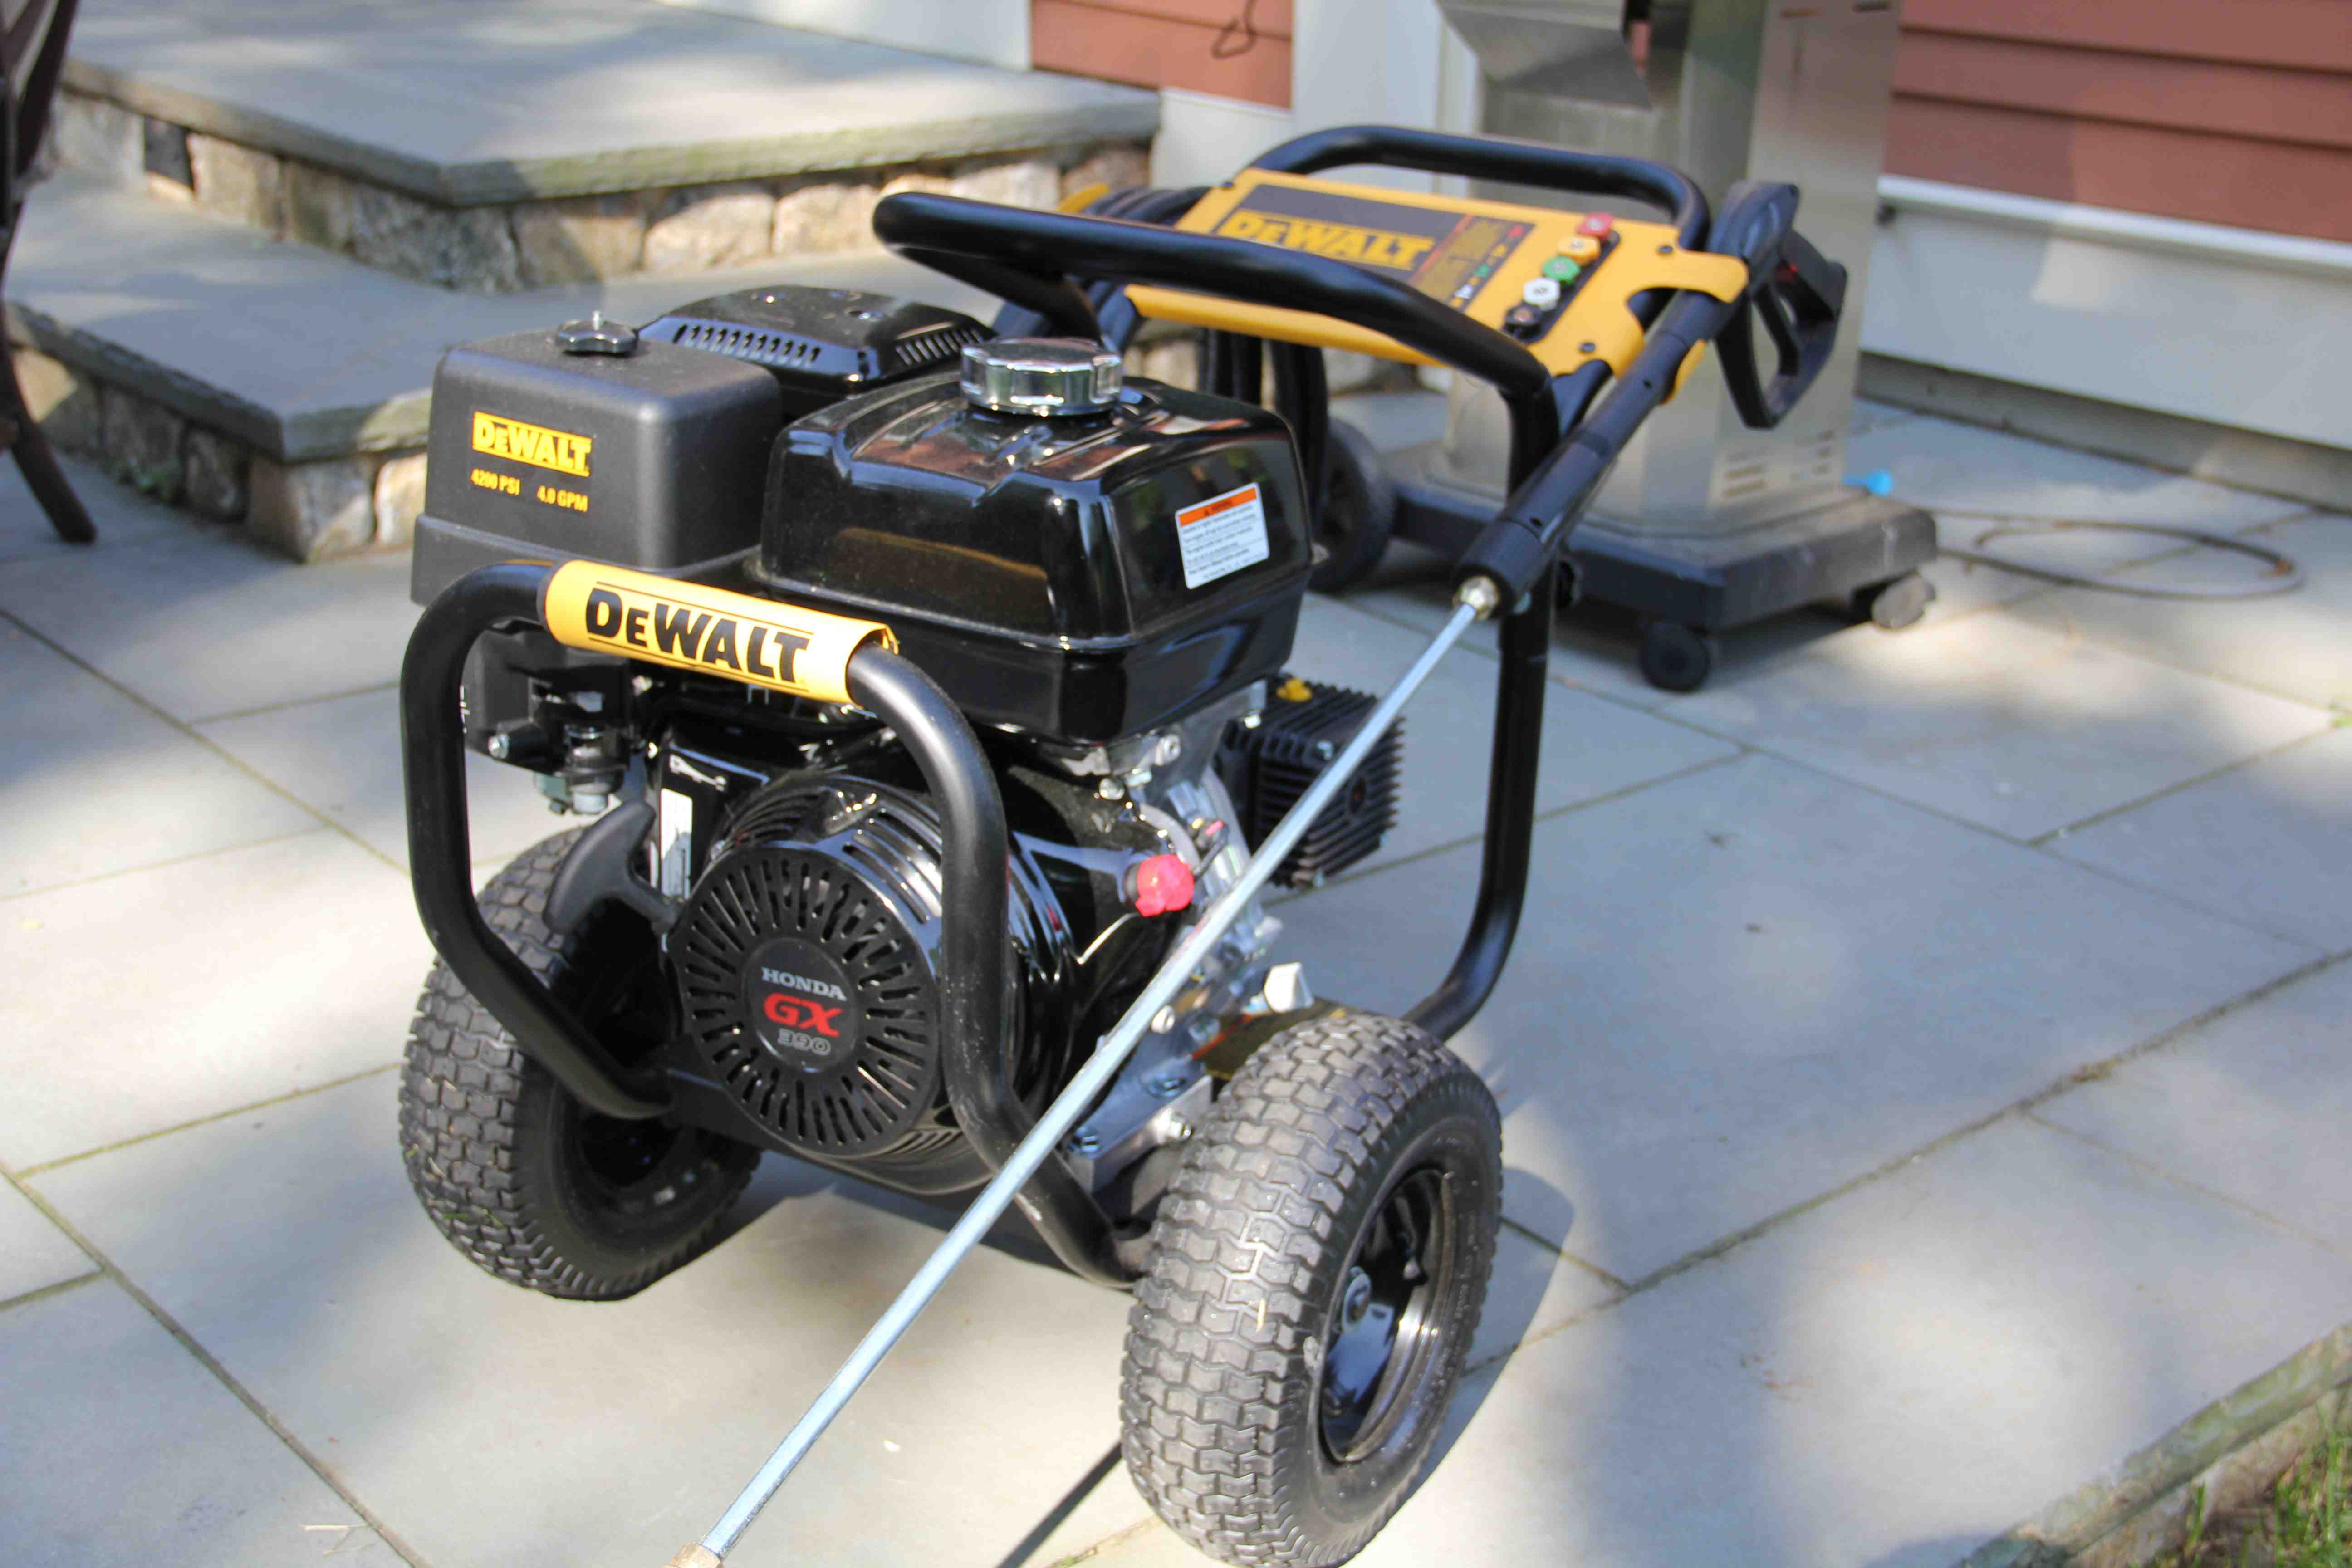 DEWALT DXPW4240 Pressure Washer Review - A Concord Carpenter on